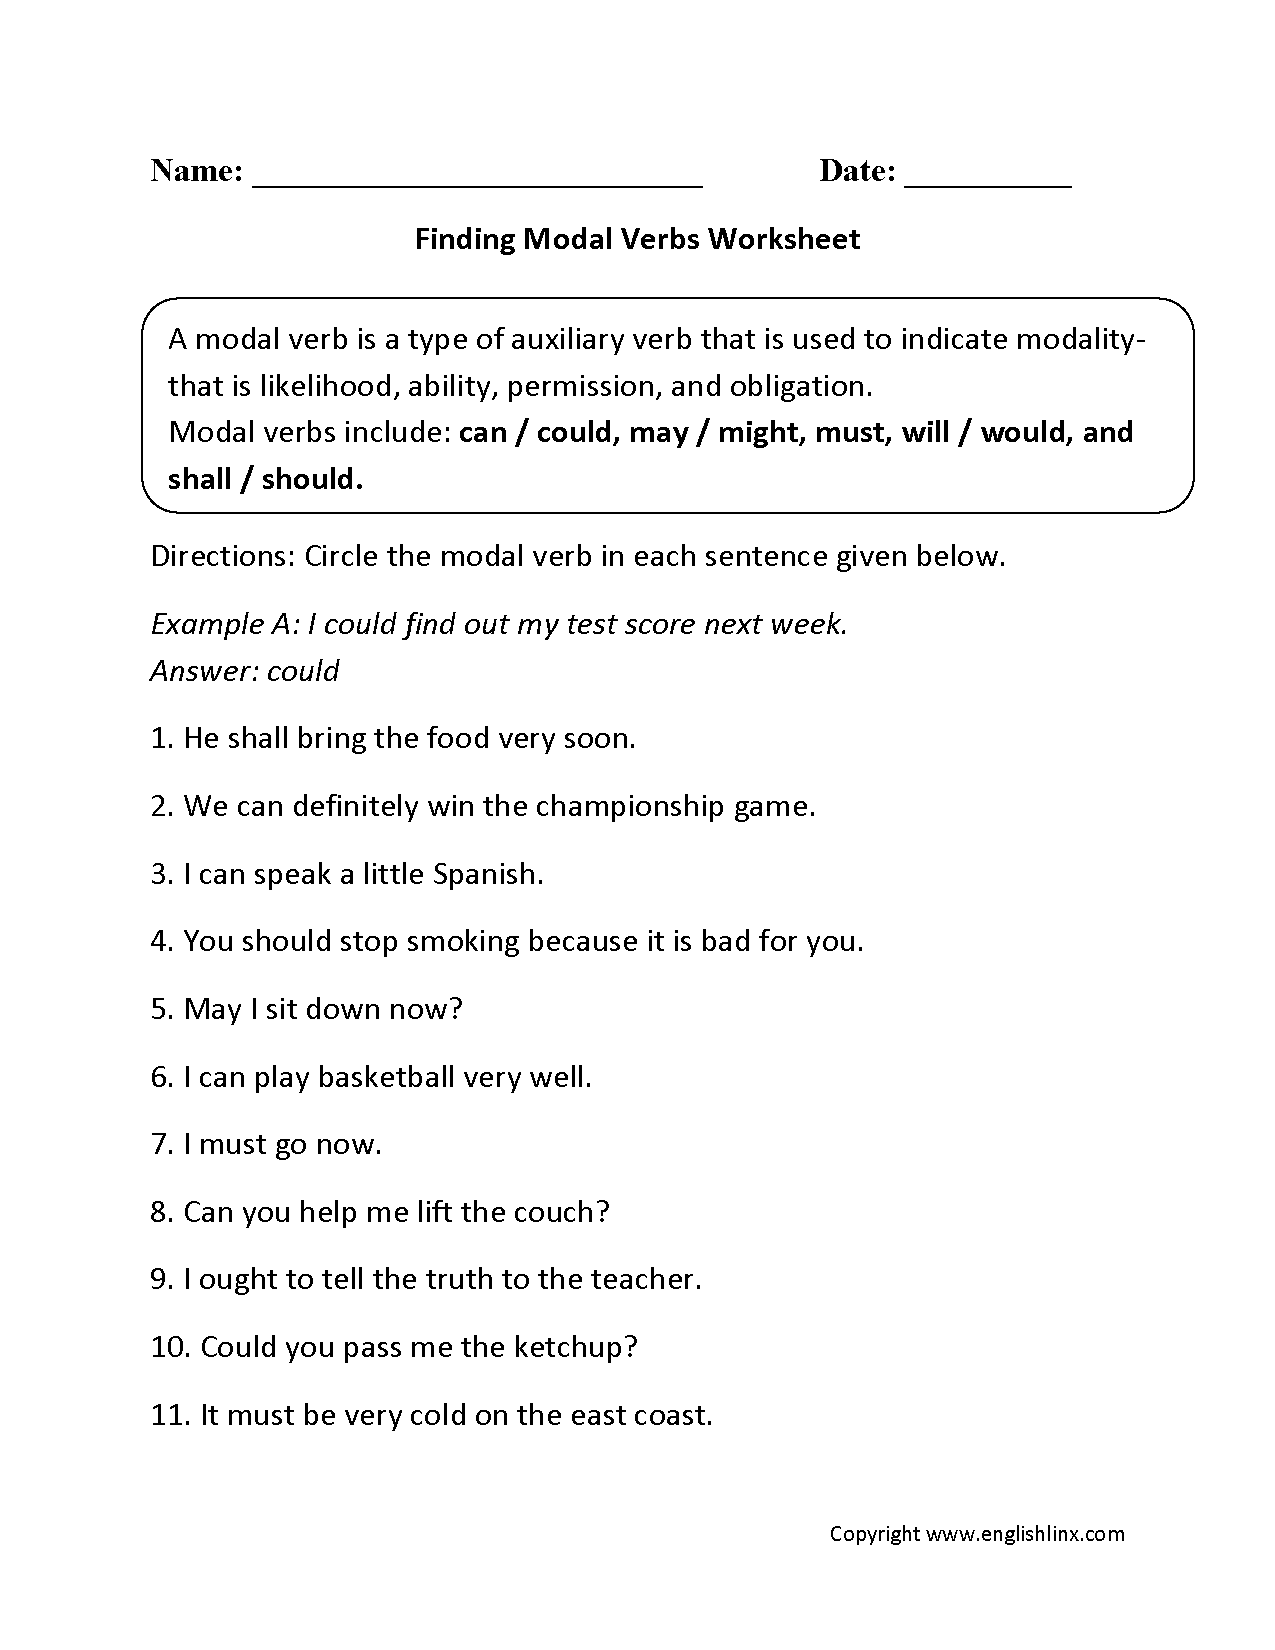 Worksheets Helping Verbs Worksheets verbs worksheets modal worksheets